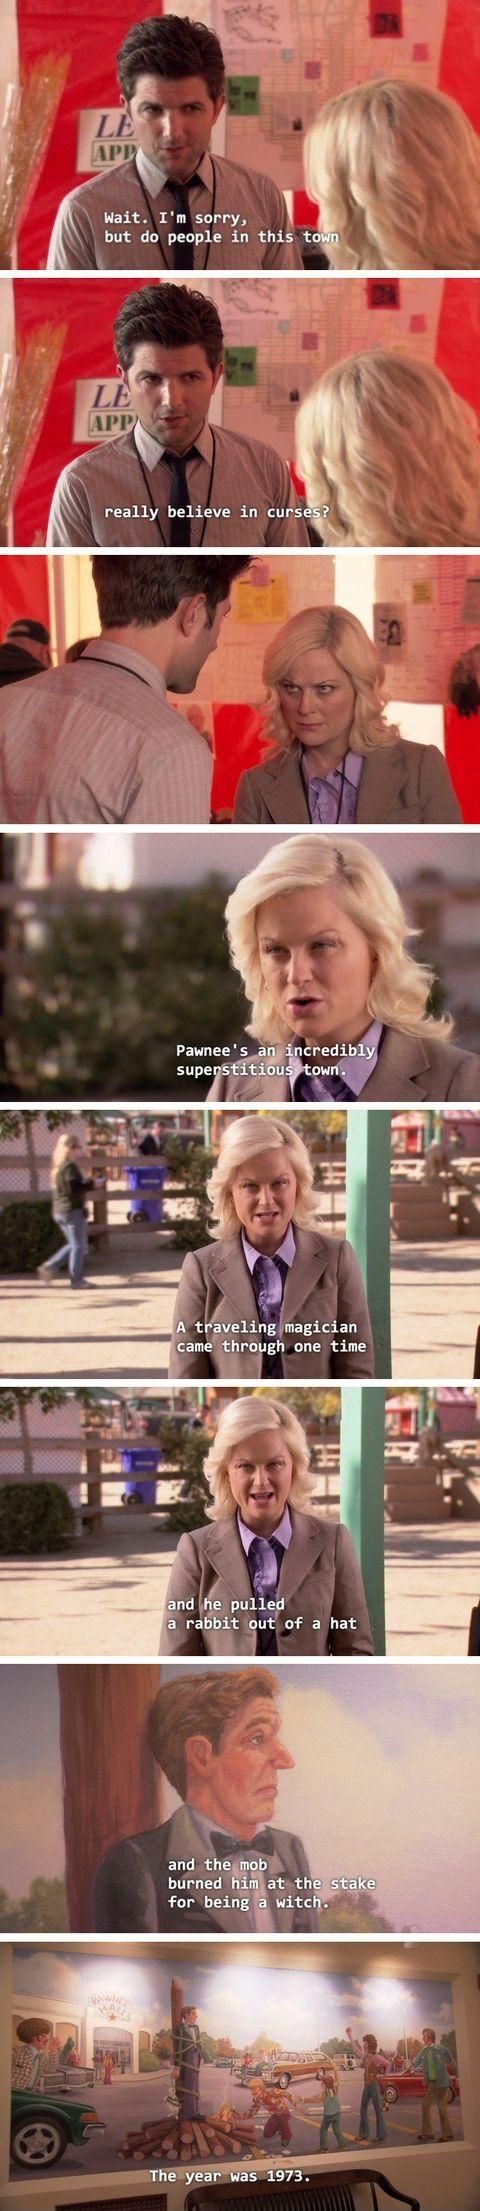 Pawnee is a superstitious place